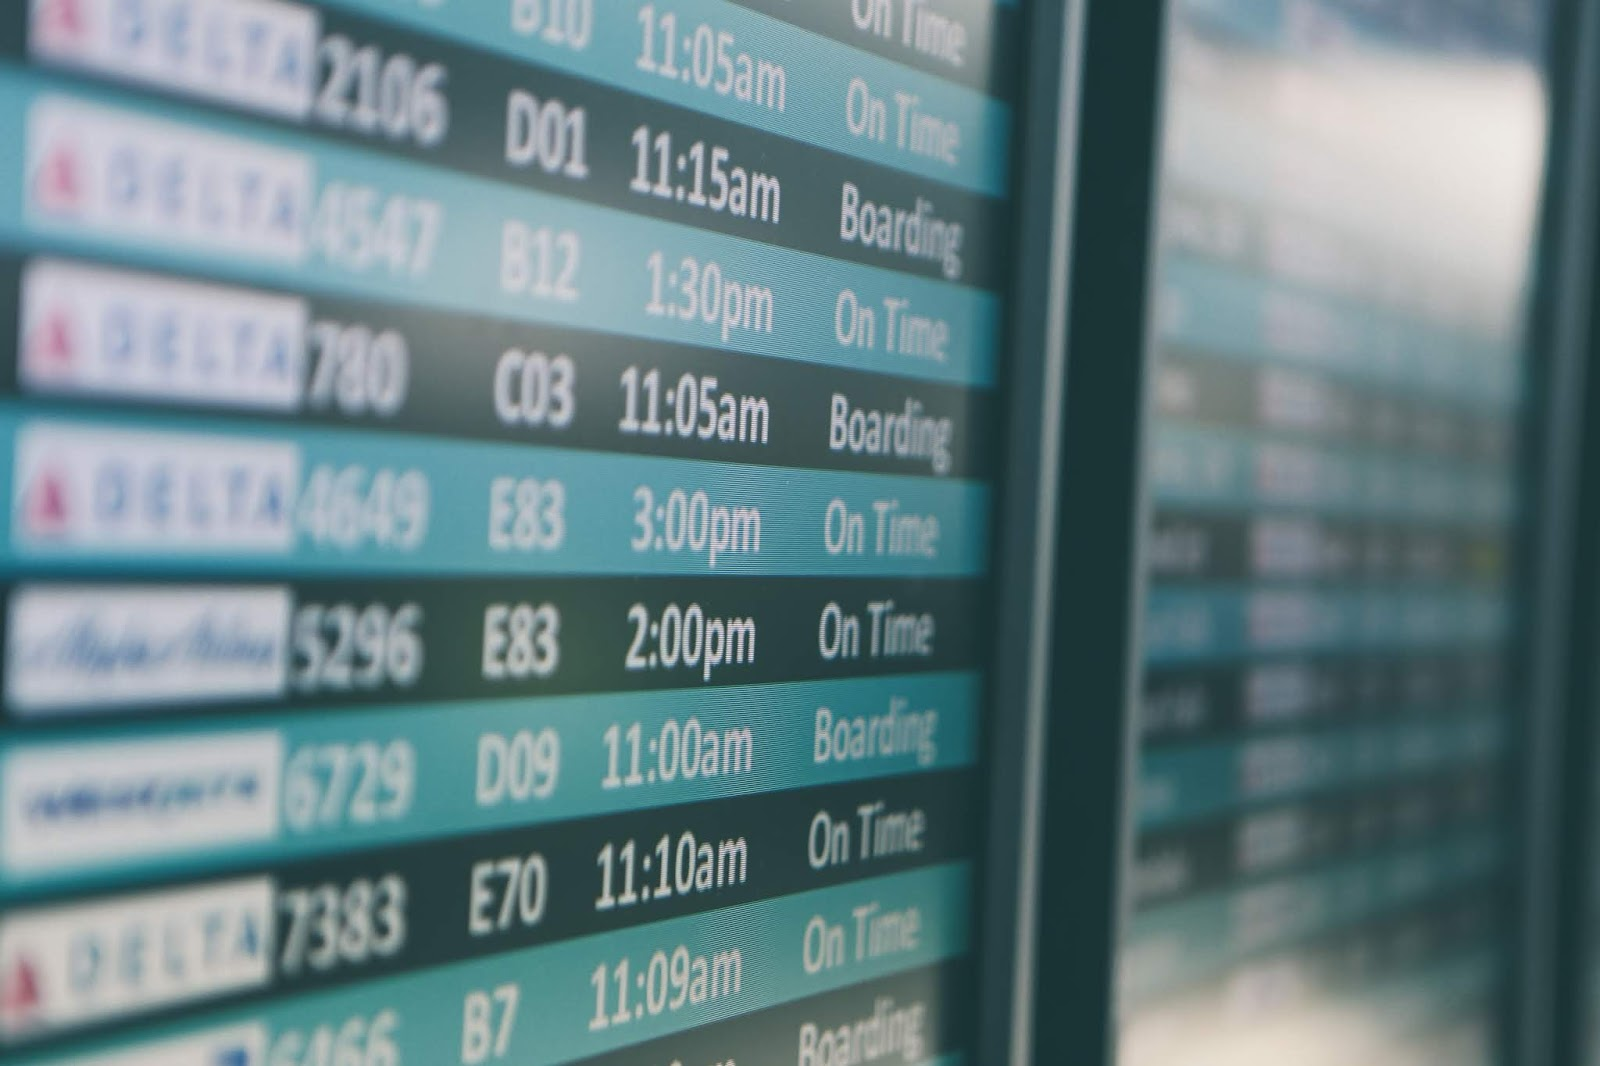 How To Obtain Boarding Pass At Naia Terminal 4 The Girl